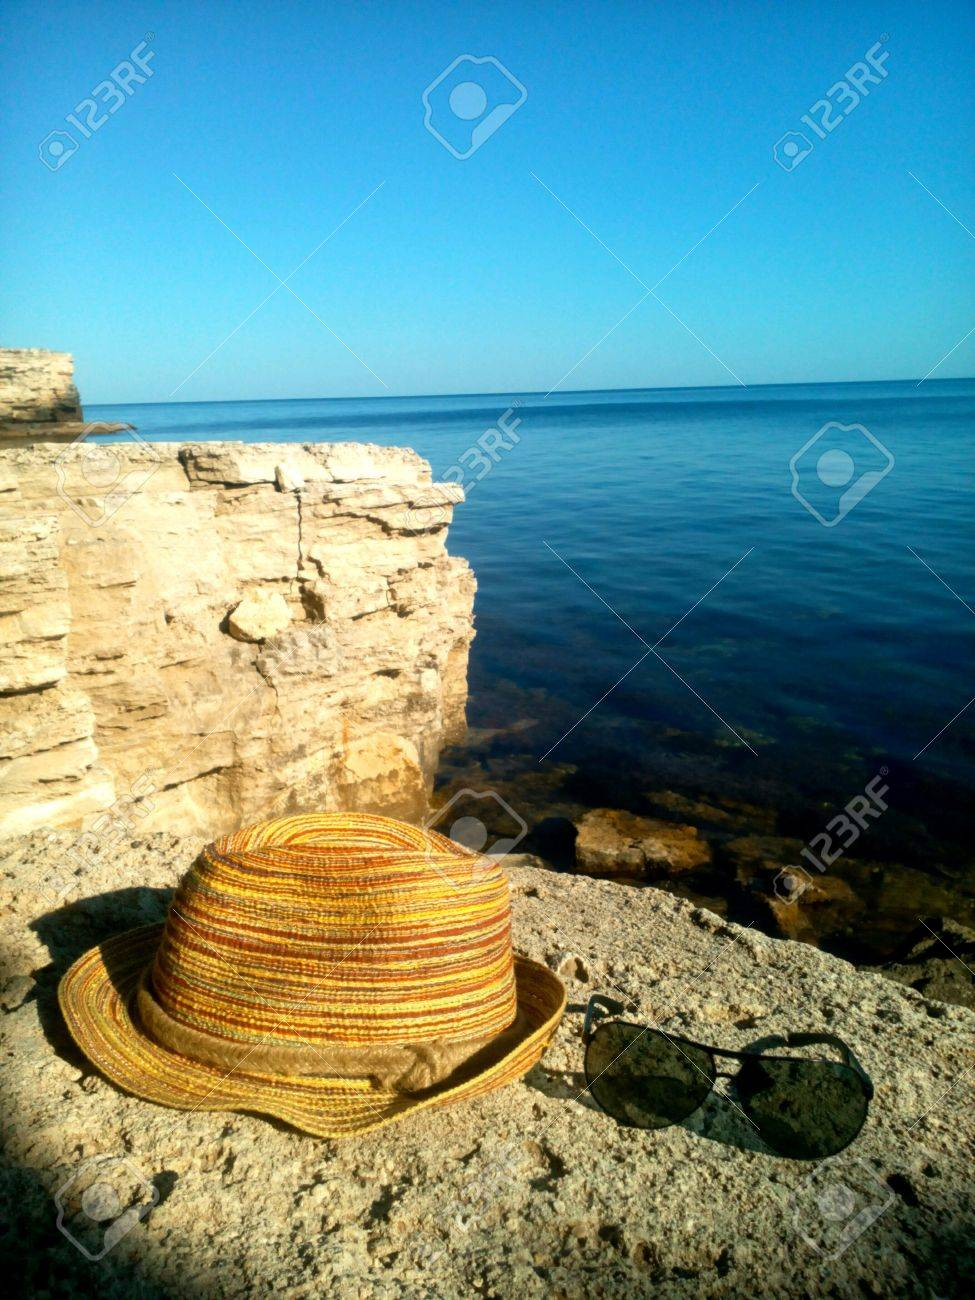 26ed9ad13 Stock Photo Summer Rest Hat And Sunglasses On A Sea Stone Rock Background